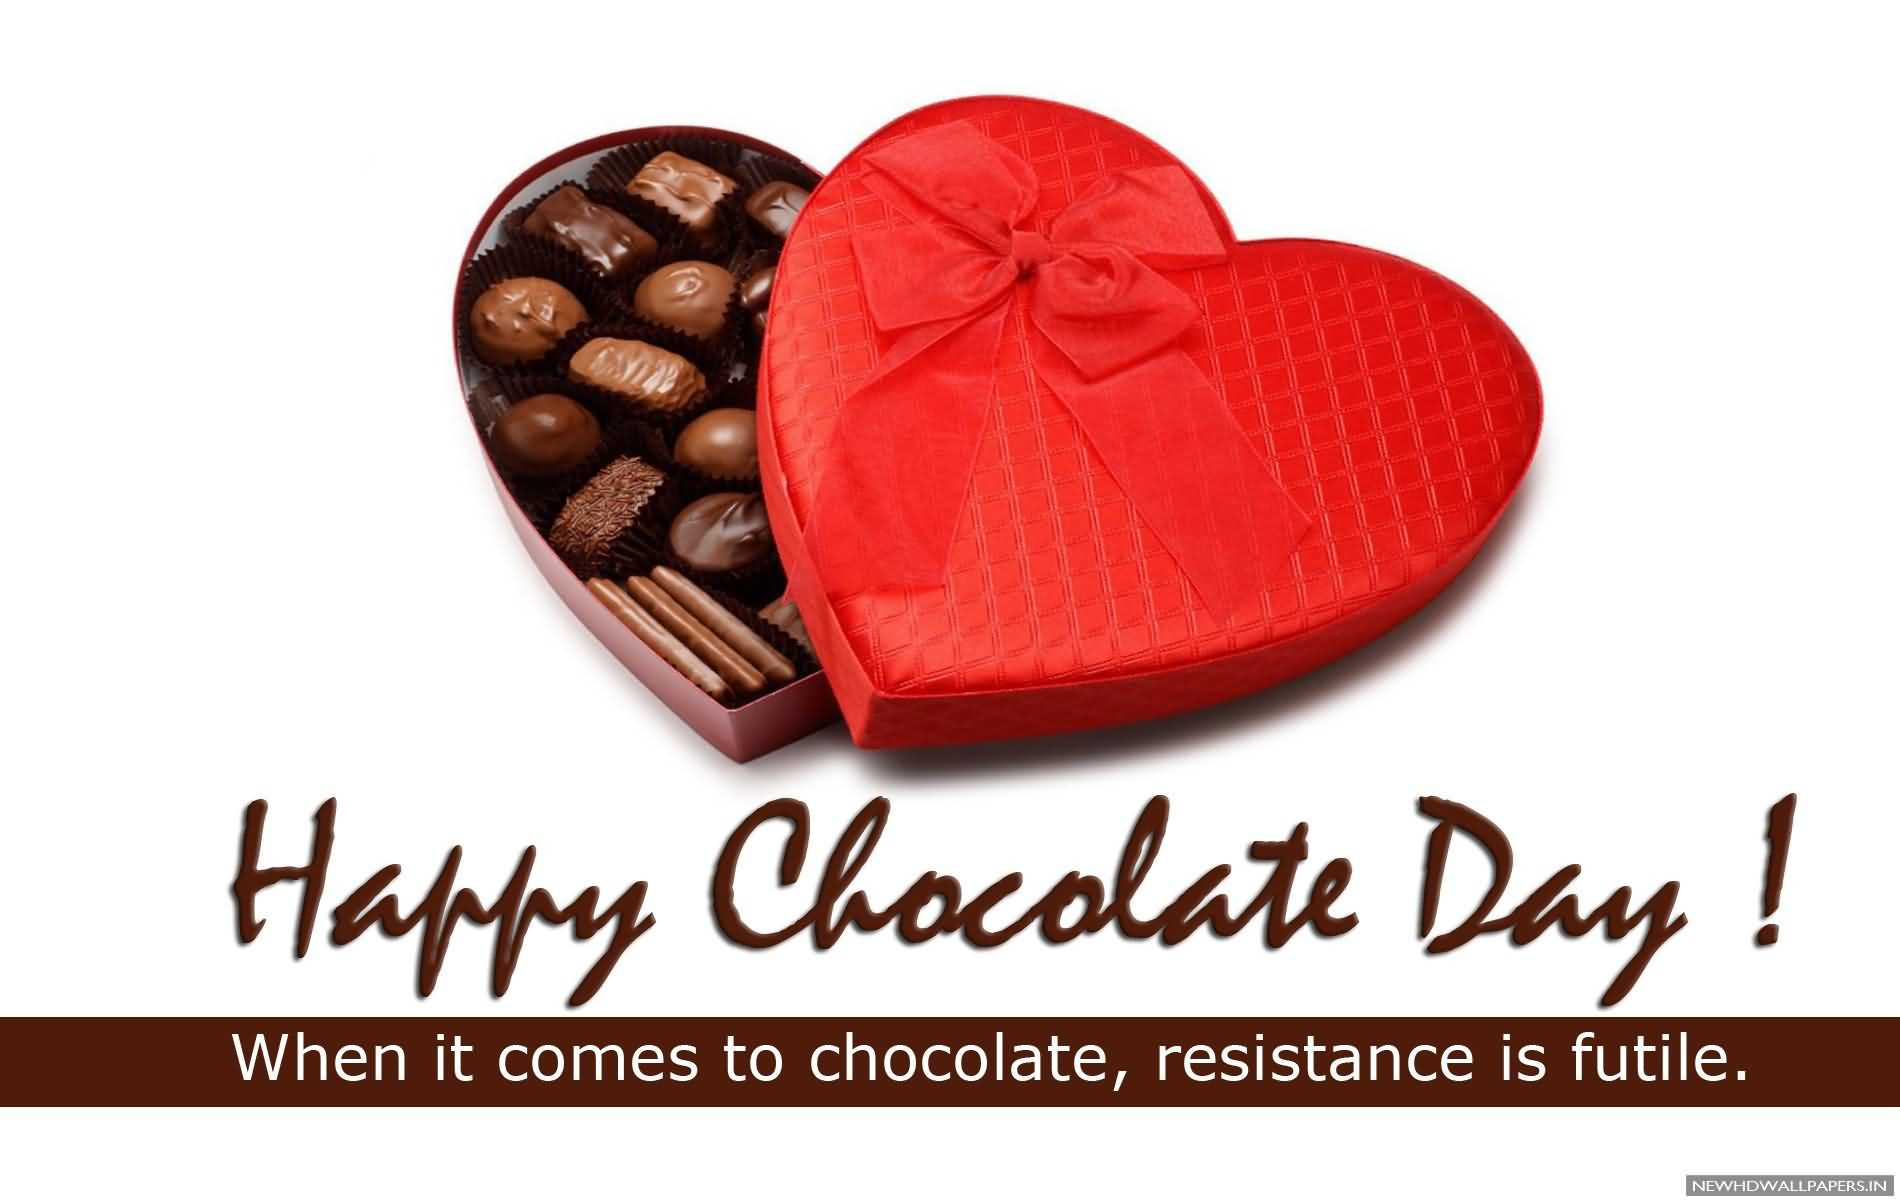 51 Best Chocolate Day Images, Pictures, Gifs & Wallpapers | Picsmine